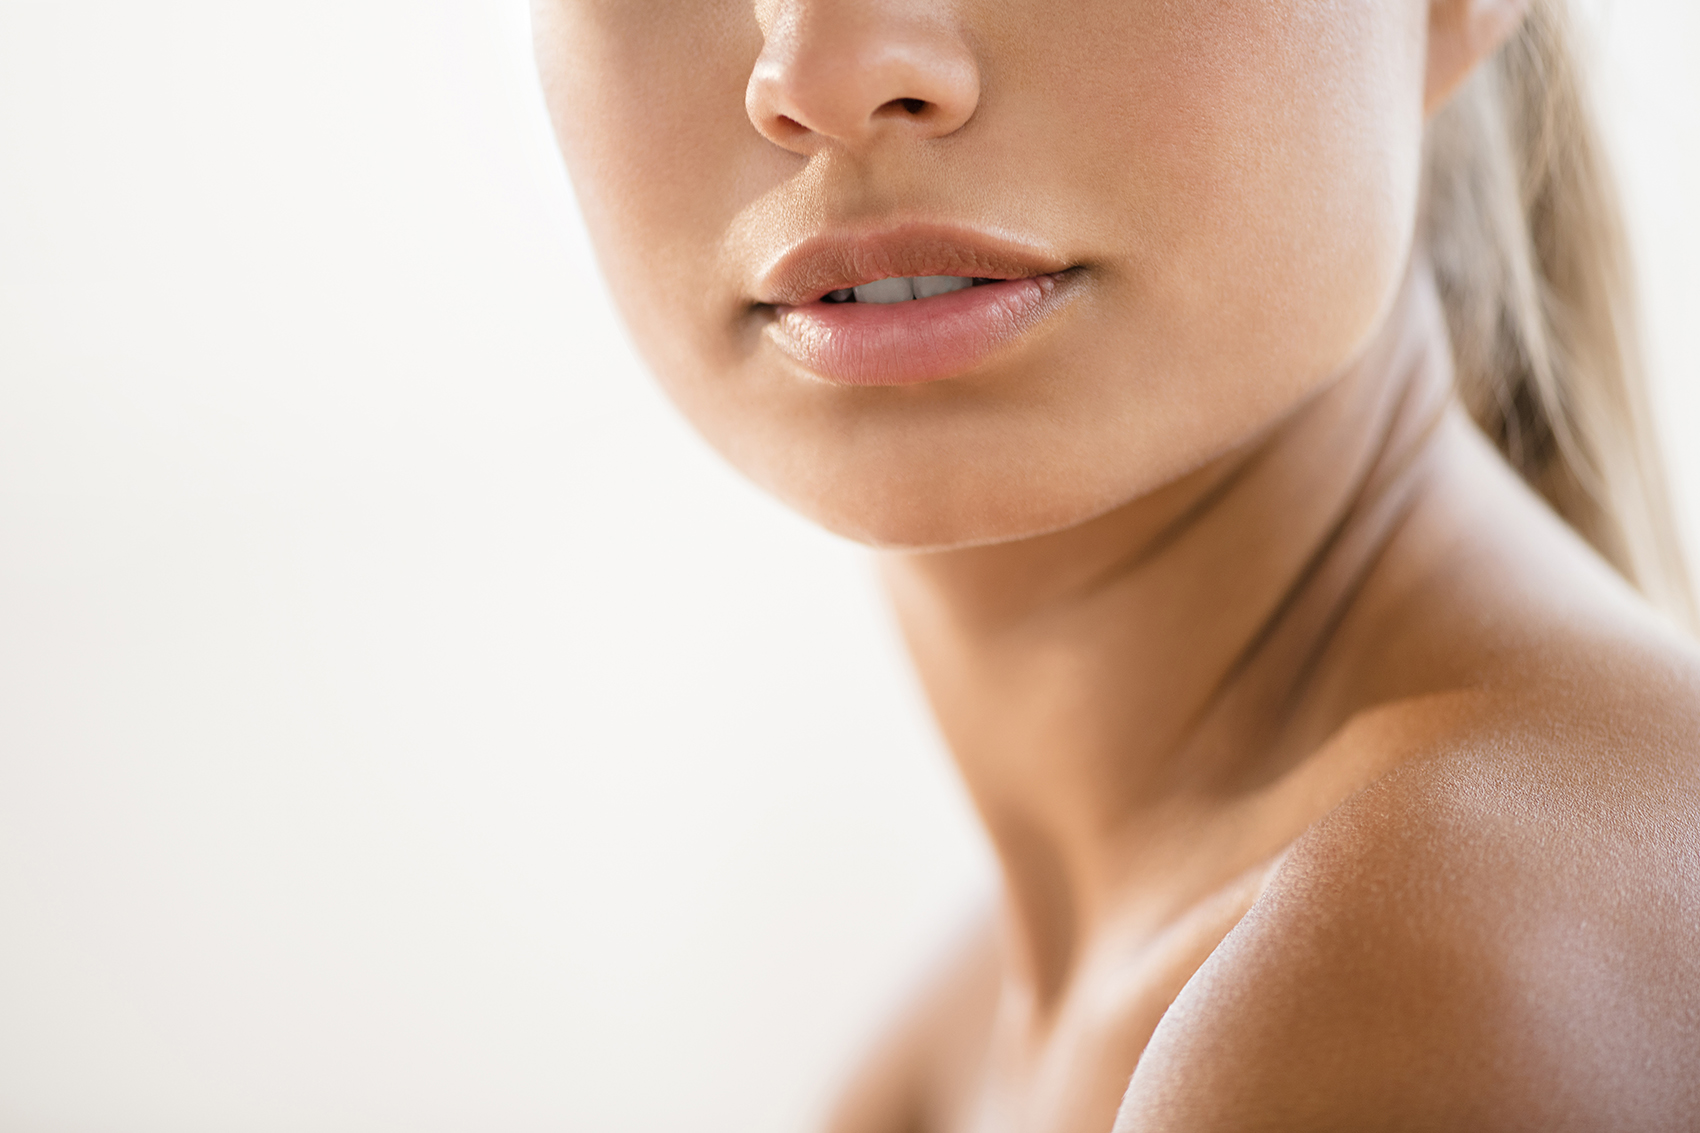 Close up of bare lips and shoulder